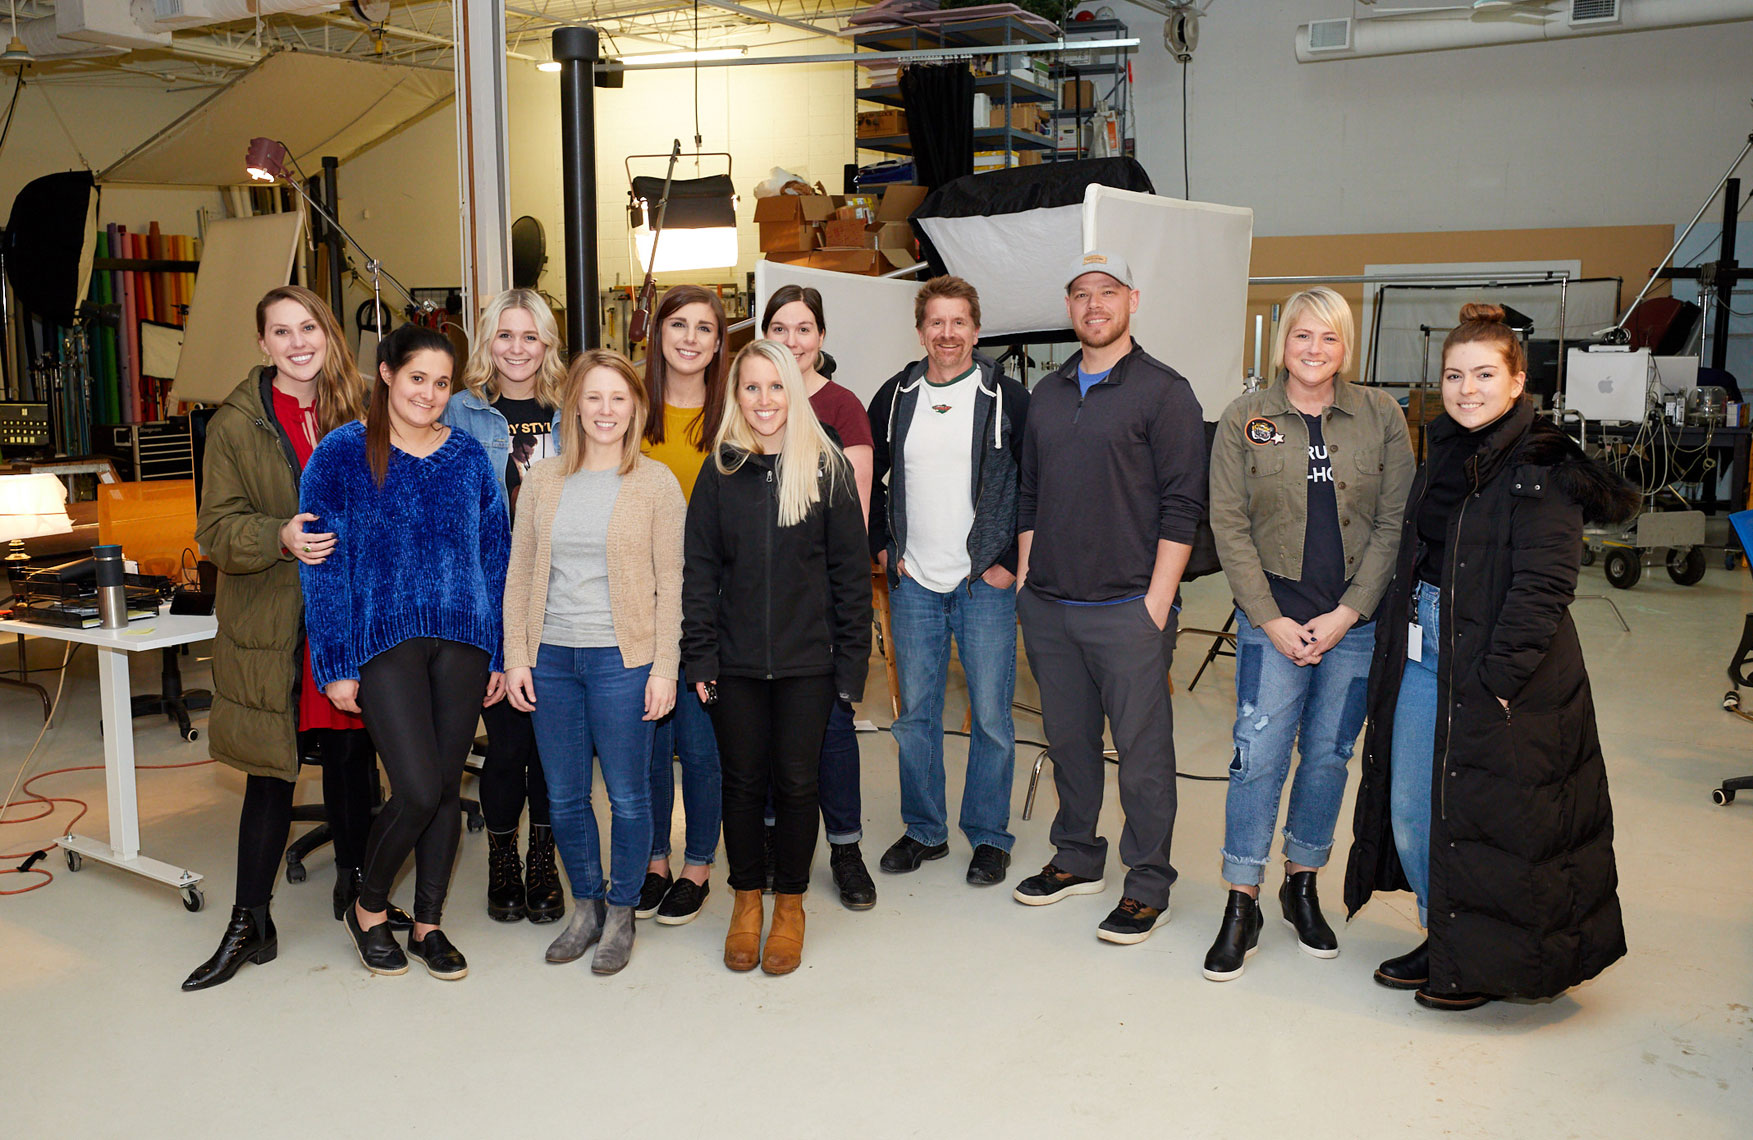 Group shot/Insideout studios crew and MOA group